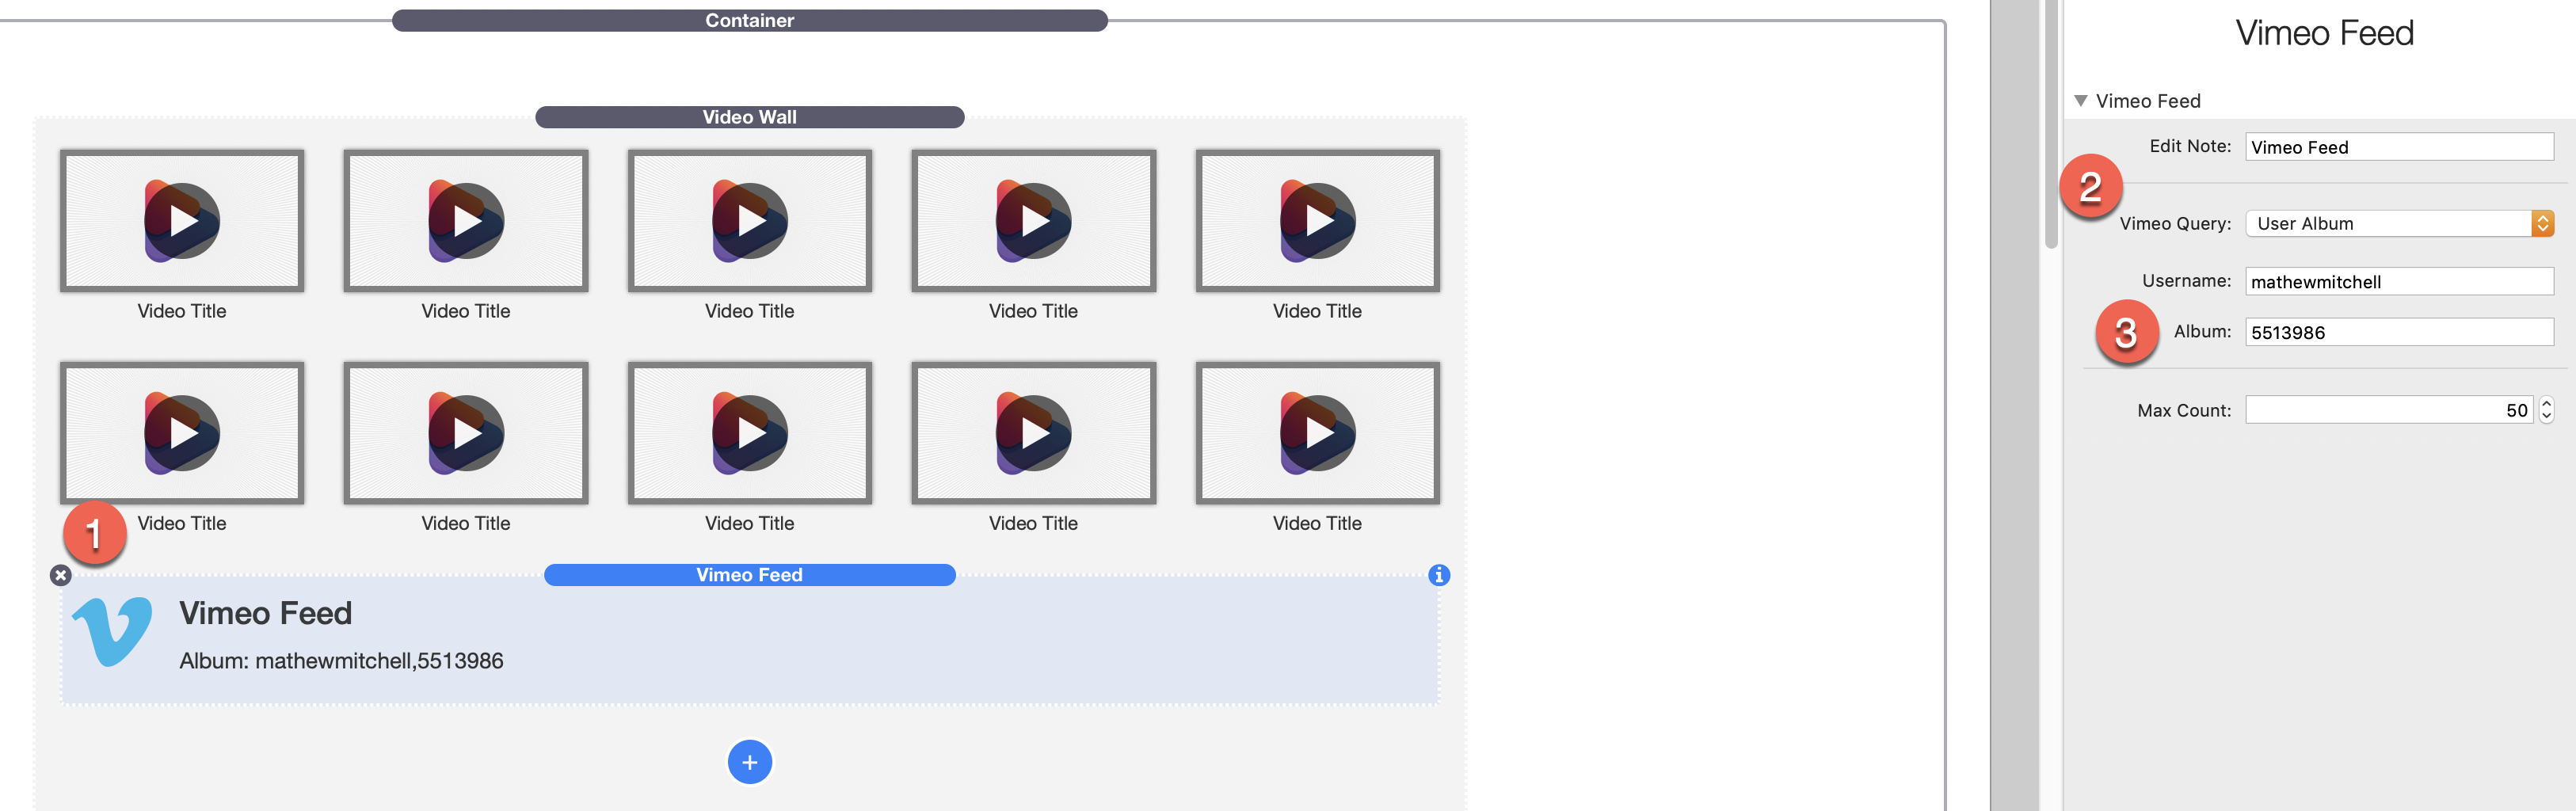 Reorder videos in video wall vimeo stack - Stacks - RapidWeaver Forums